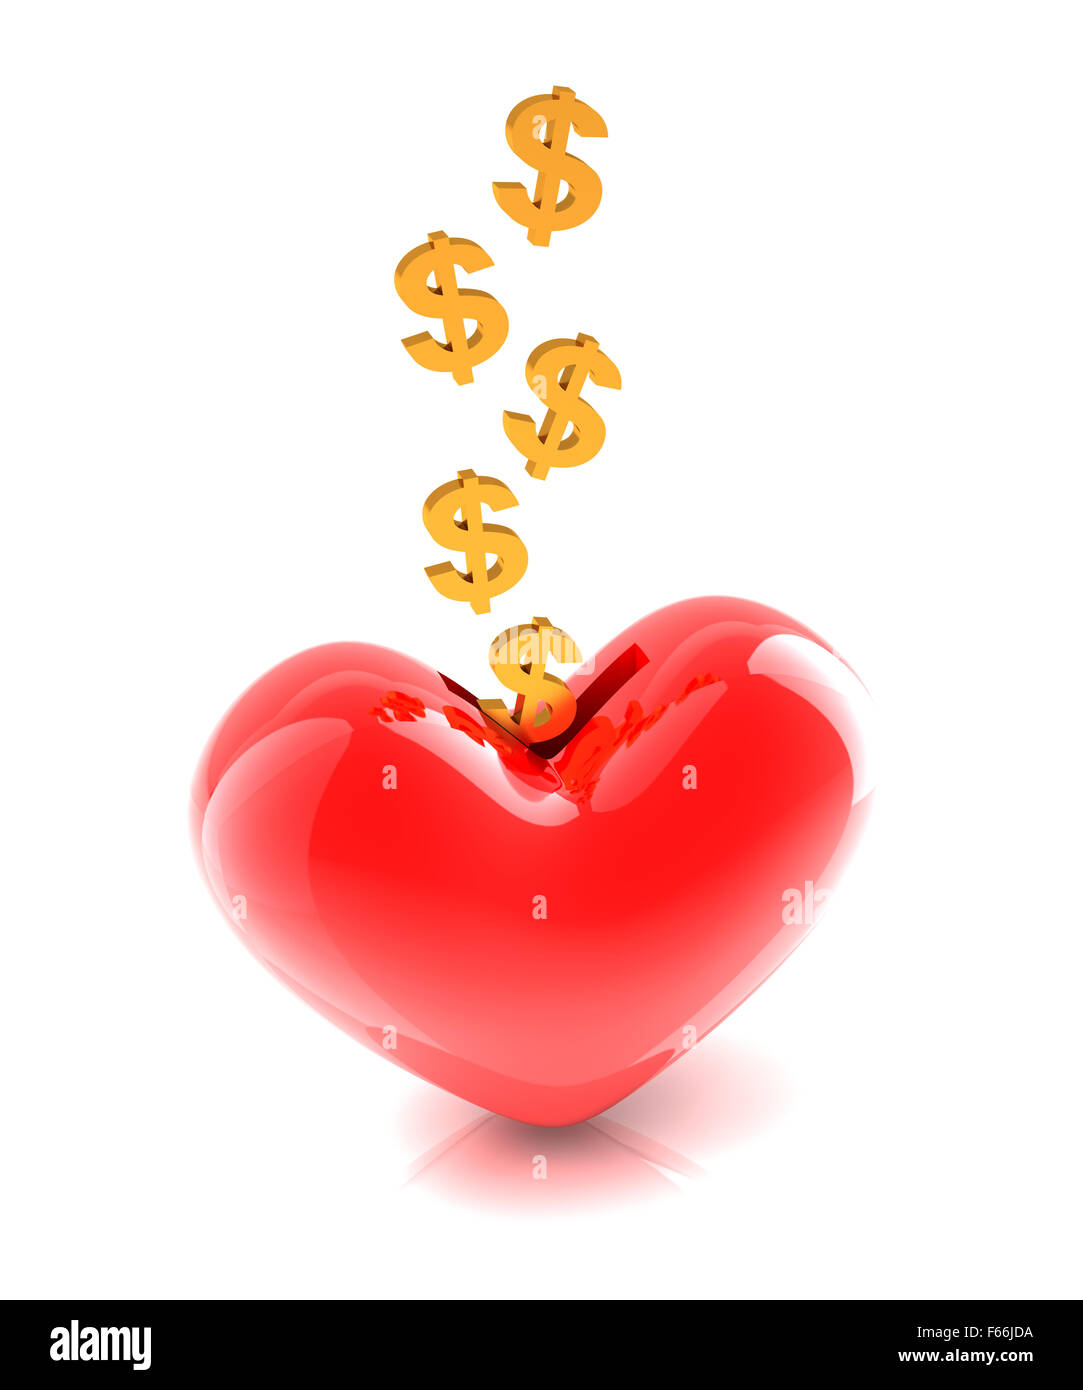 Generous money donation - Stock Image